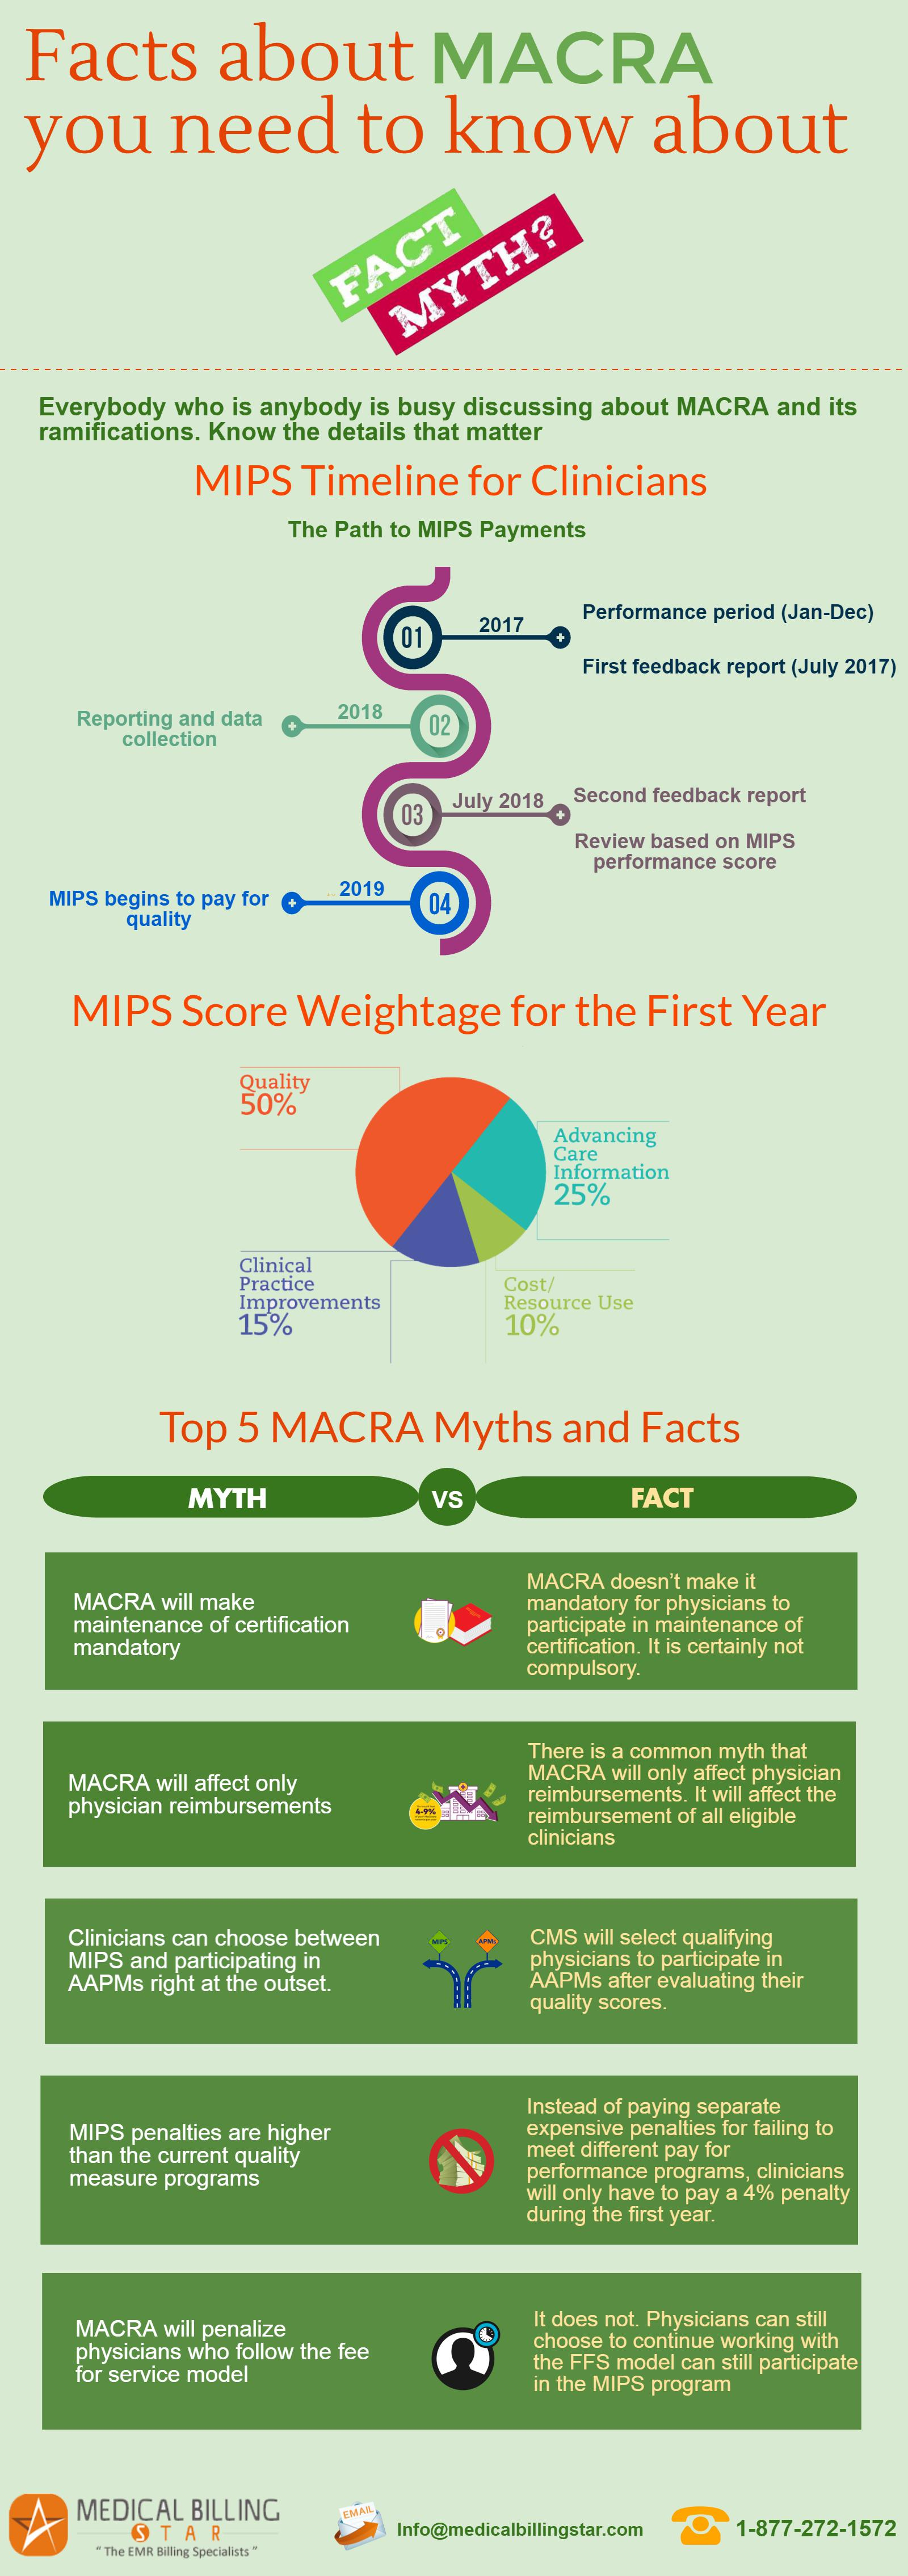 MACRA Facts & Myths